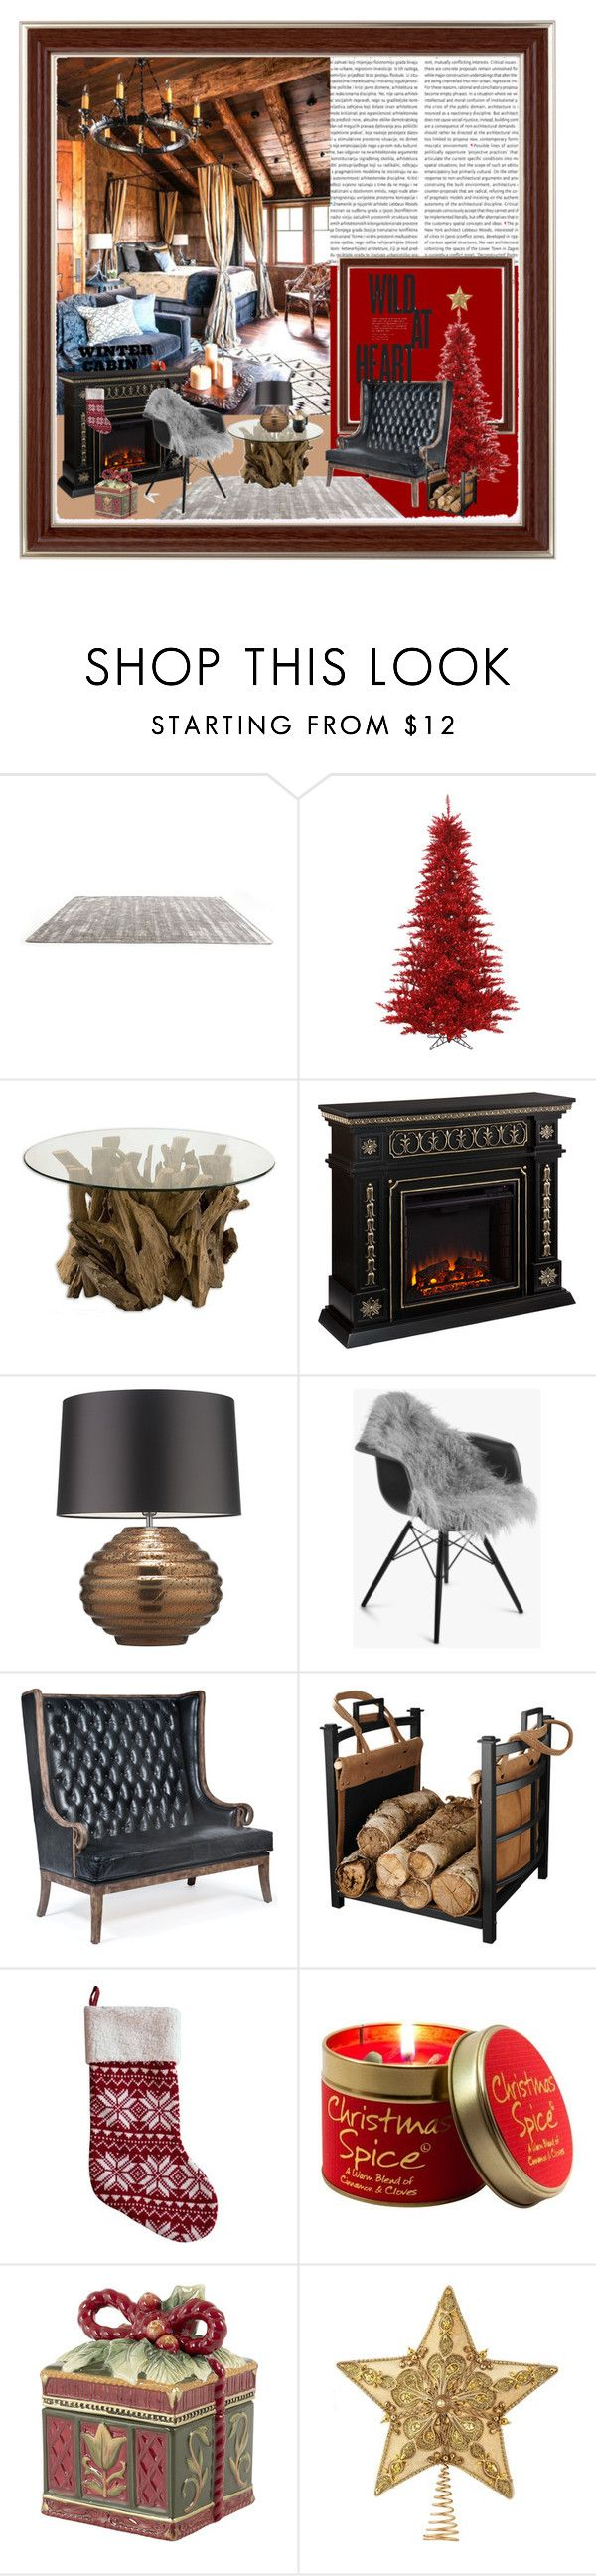 cabin in the woods by kokiorose liked on polyvore. Black Bedroom Furniture Sets. Home Design Ideas